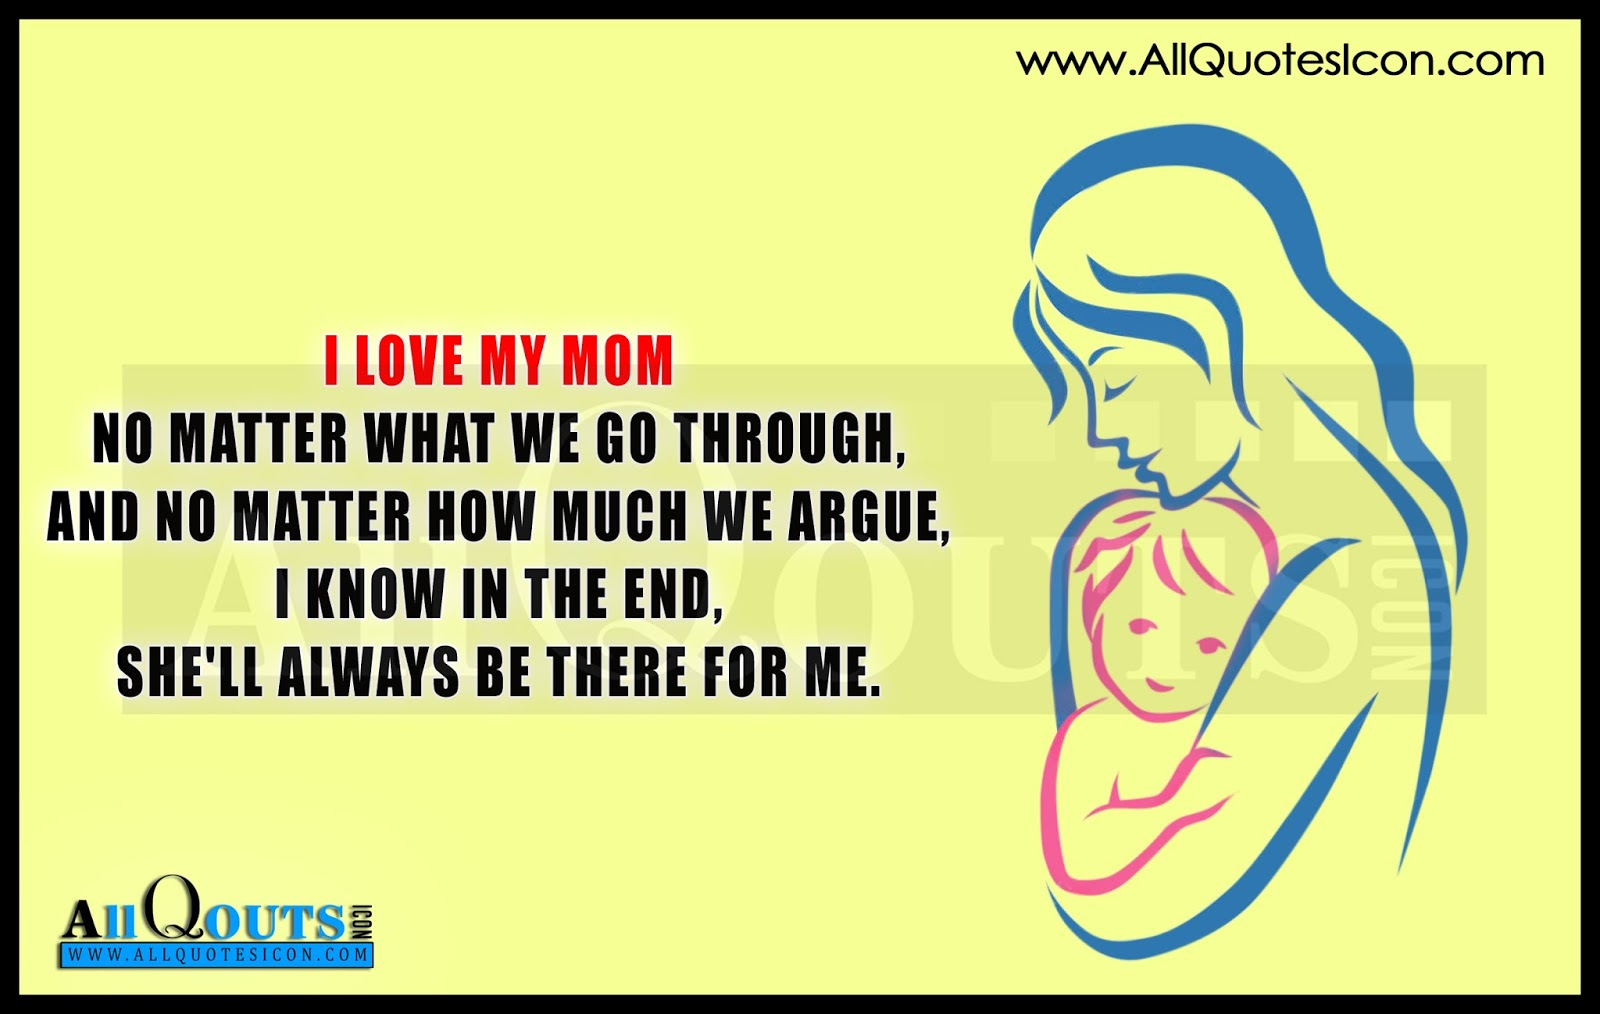 I Love You Quotes Hd : Love you Mom Images English Quotes HD Wallpapers Best Mother Quotes ...